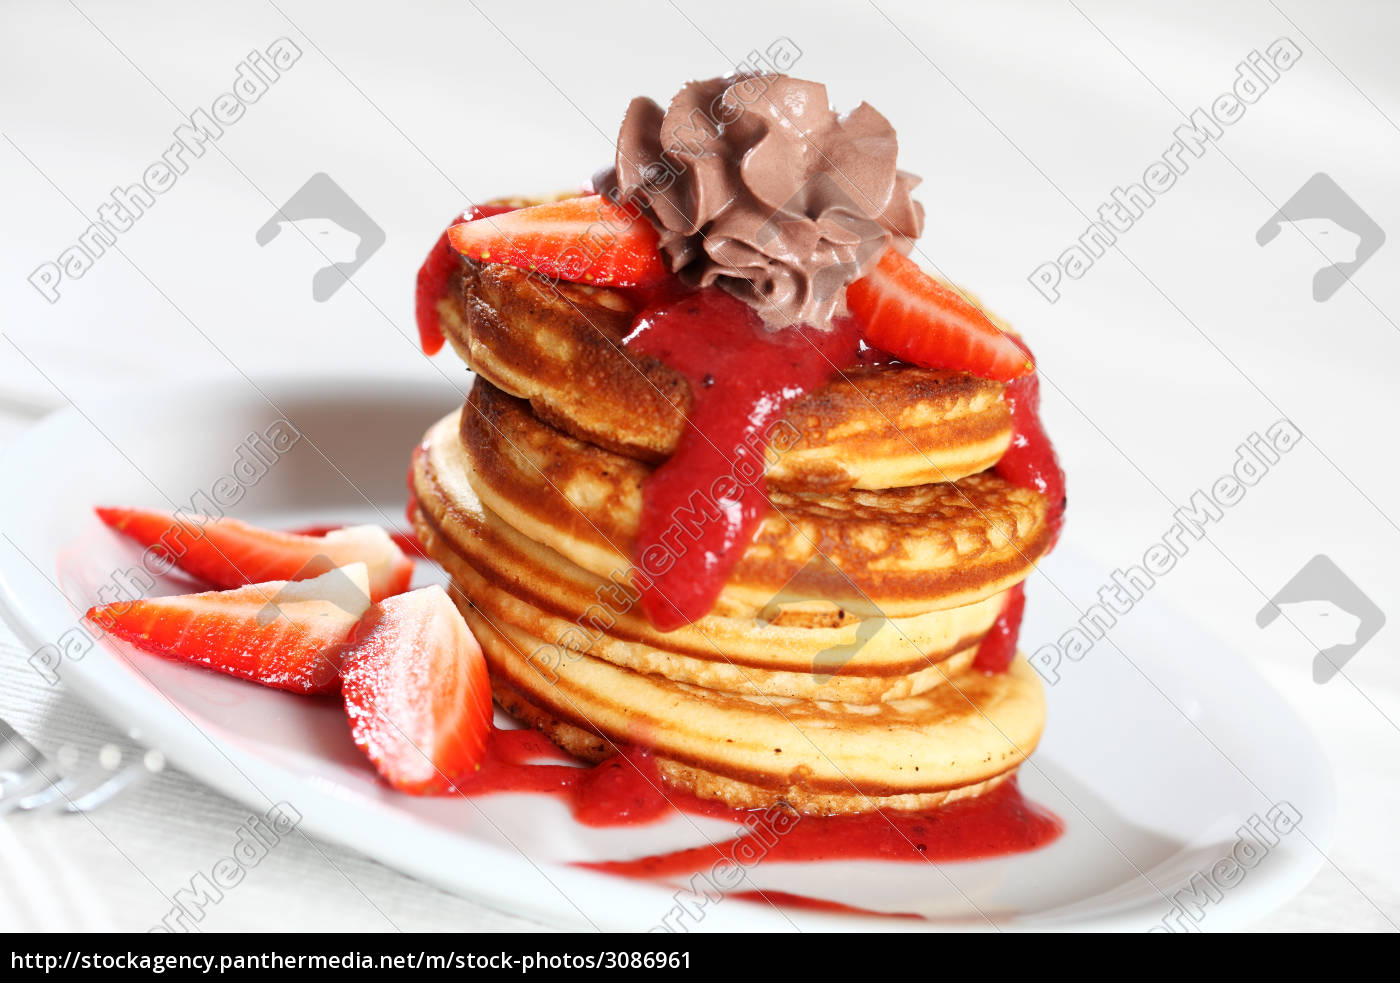 food, aliment, sweet, strawberry, dish, meal - 3086961